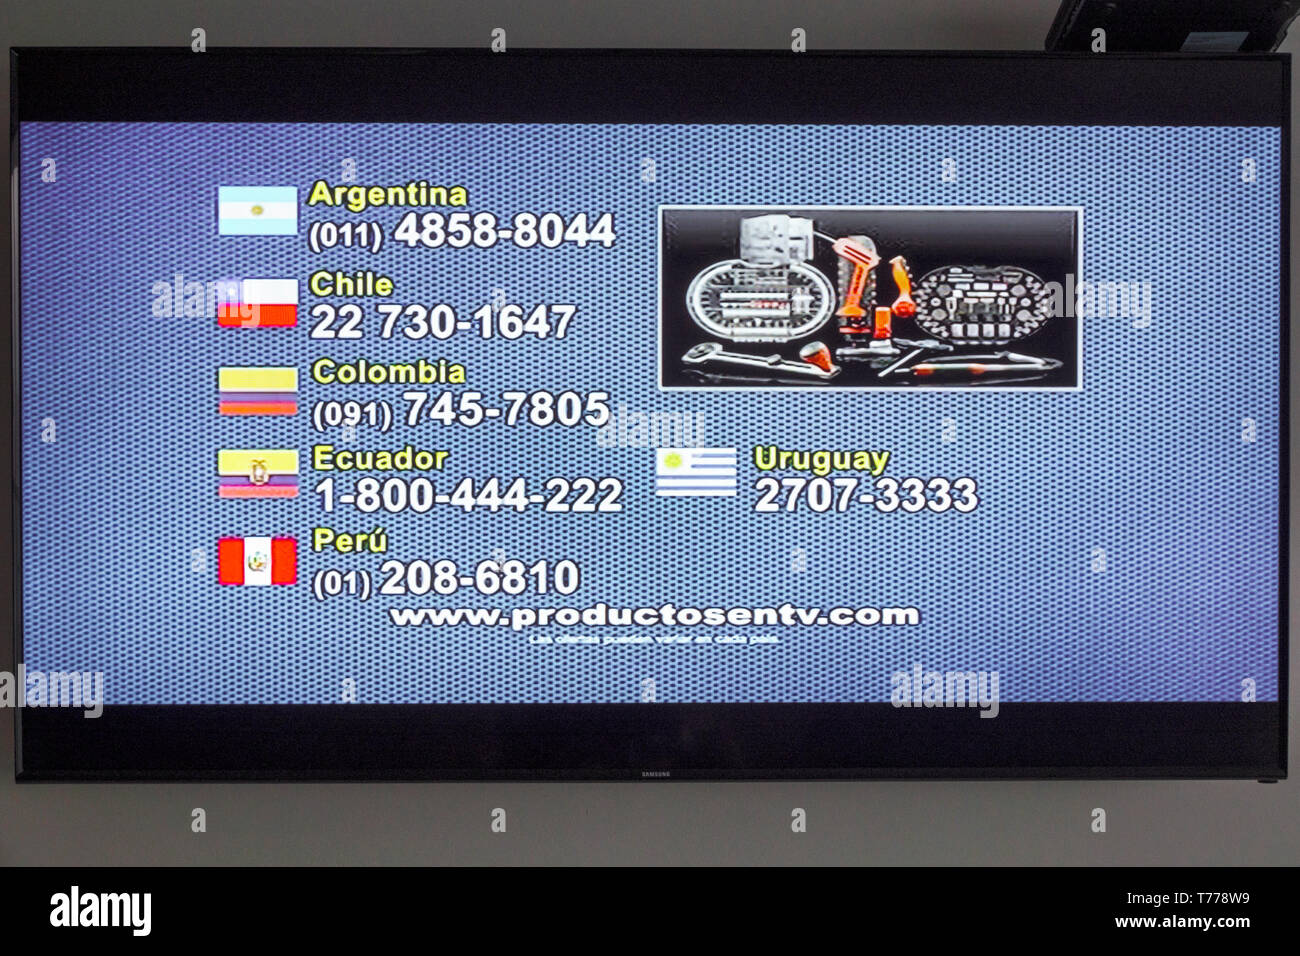 Cartagena Colombia TV television monitor screen flat screen www.productosentv.com marketing shopping channel Latin America telemarketing Stock Photo